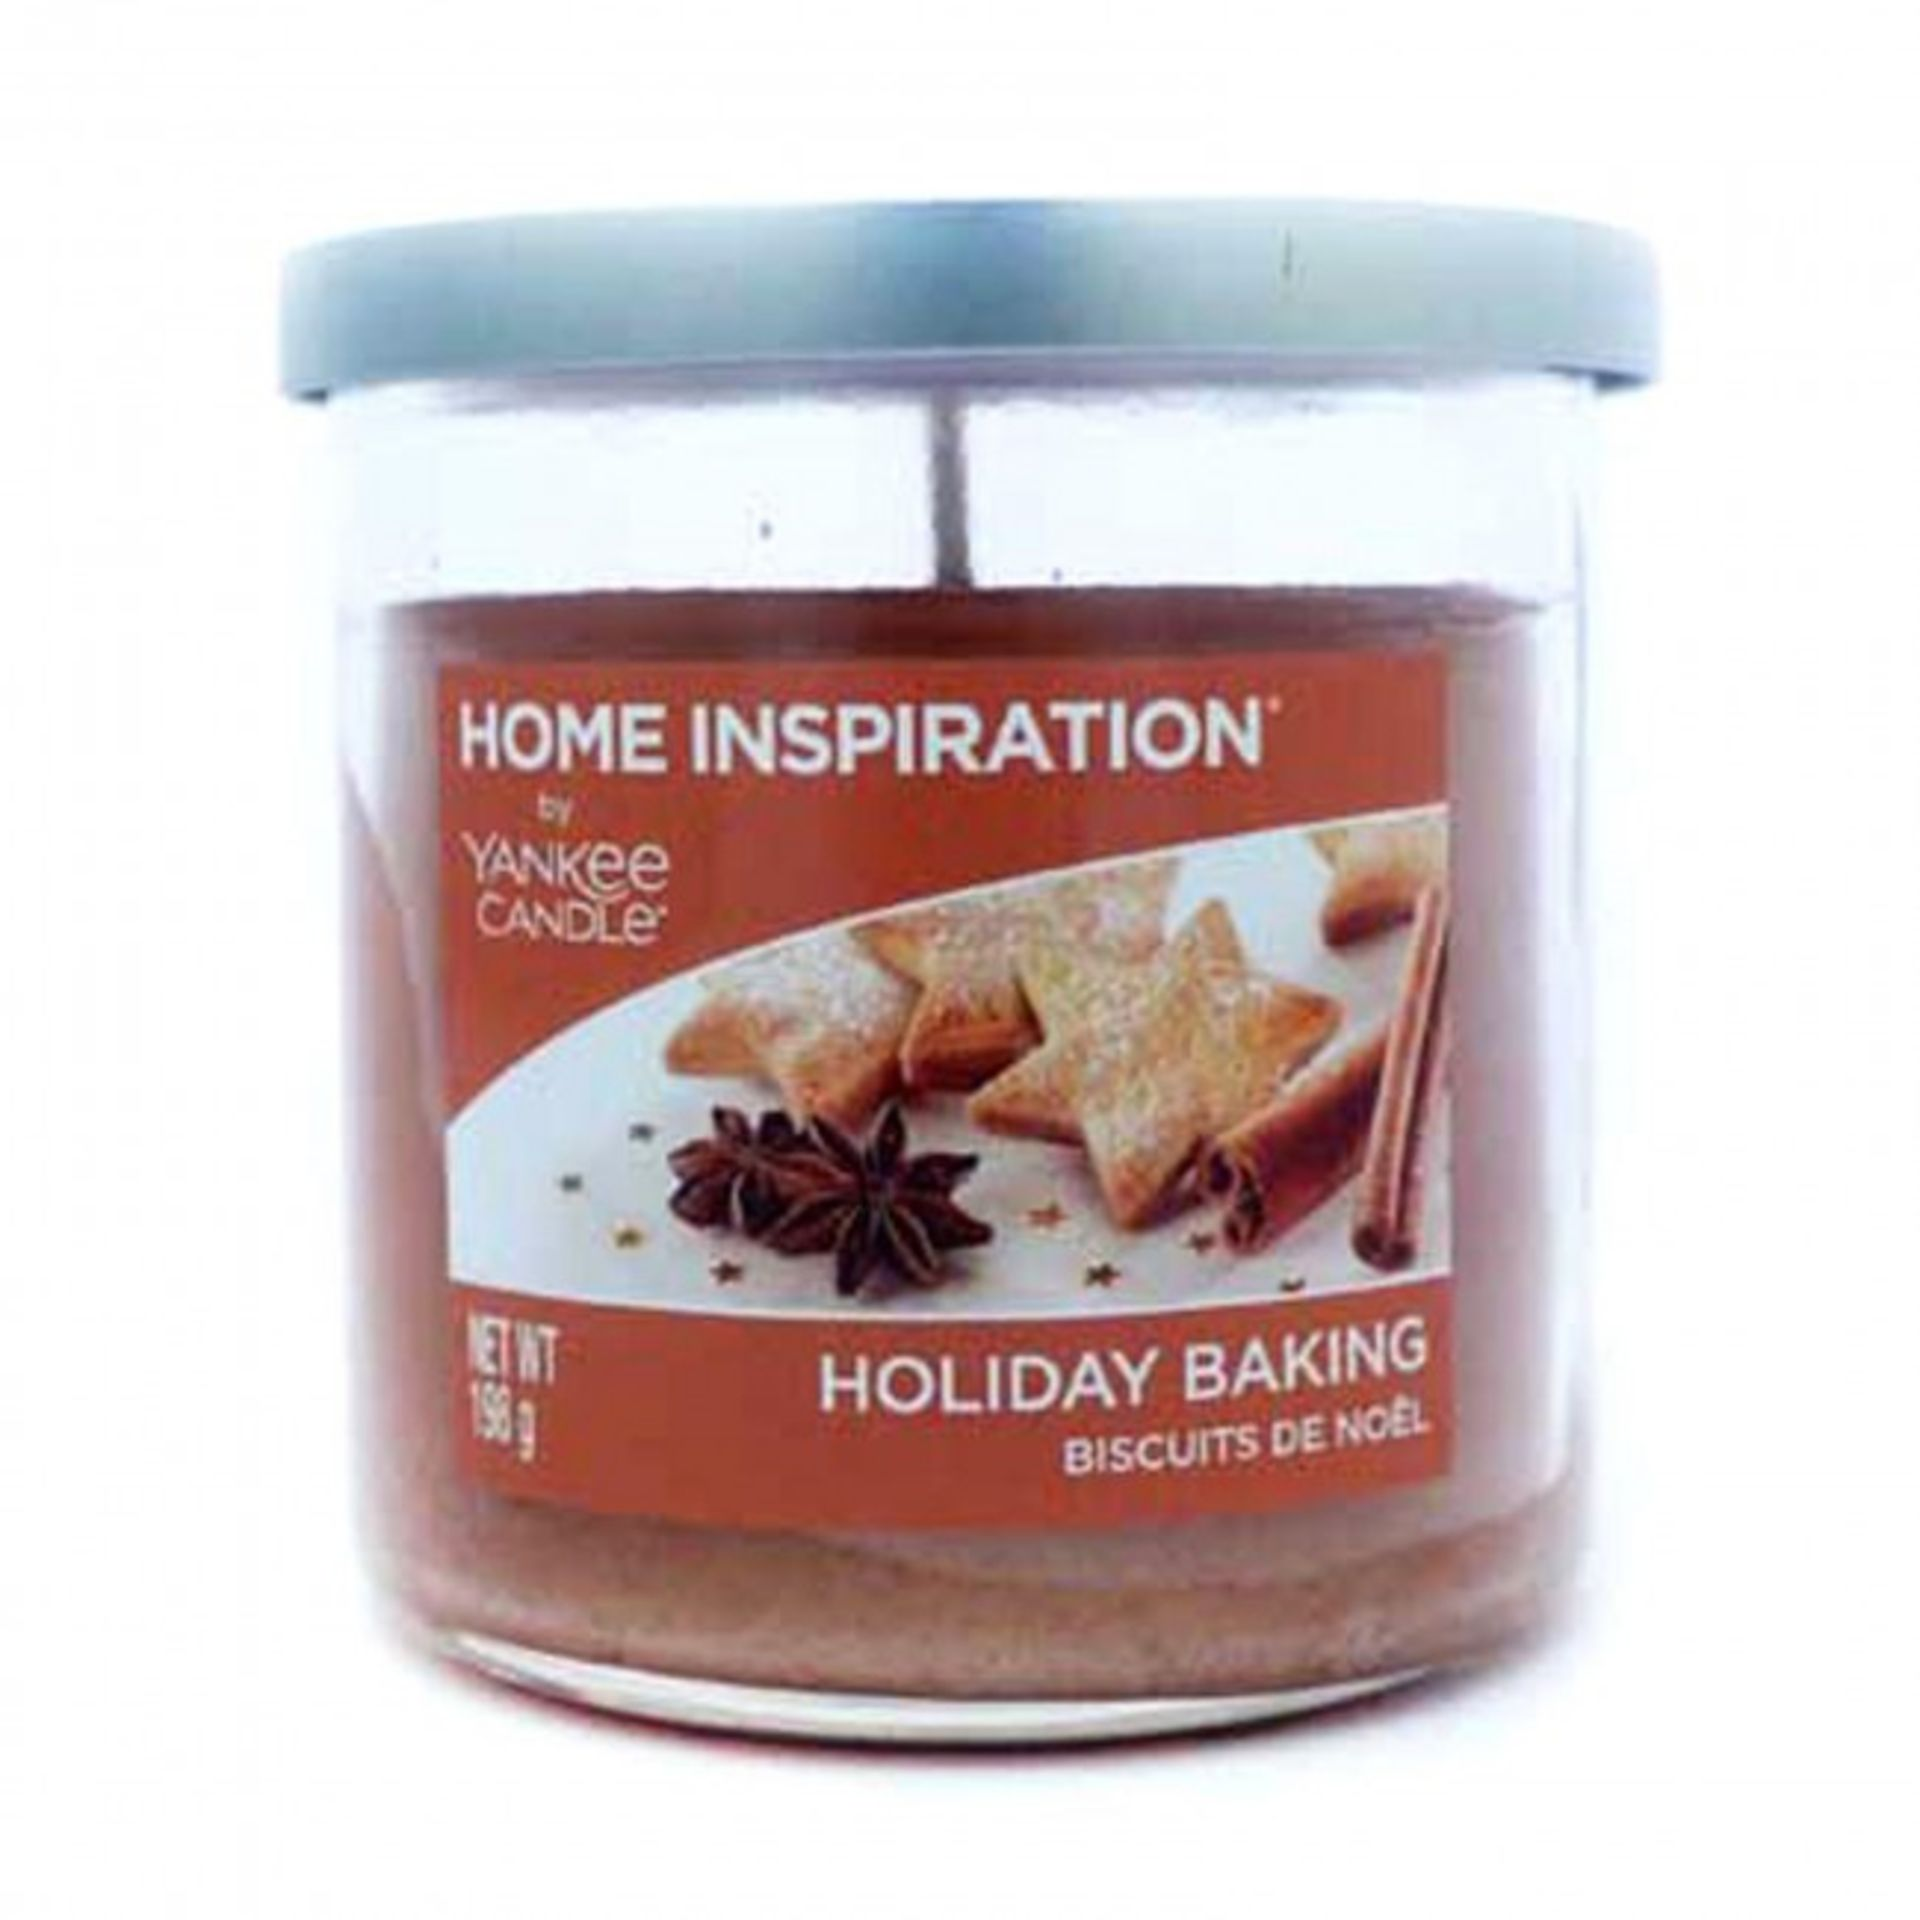 Lot 50137 - V Brand New Home Inspiration by Yankee Candle Holiday Baking 198g Tumbler Candle - ISP £7.99 Ebay